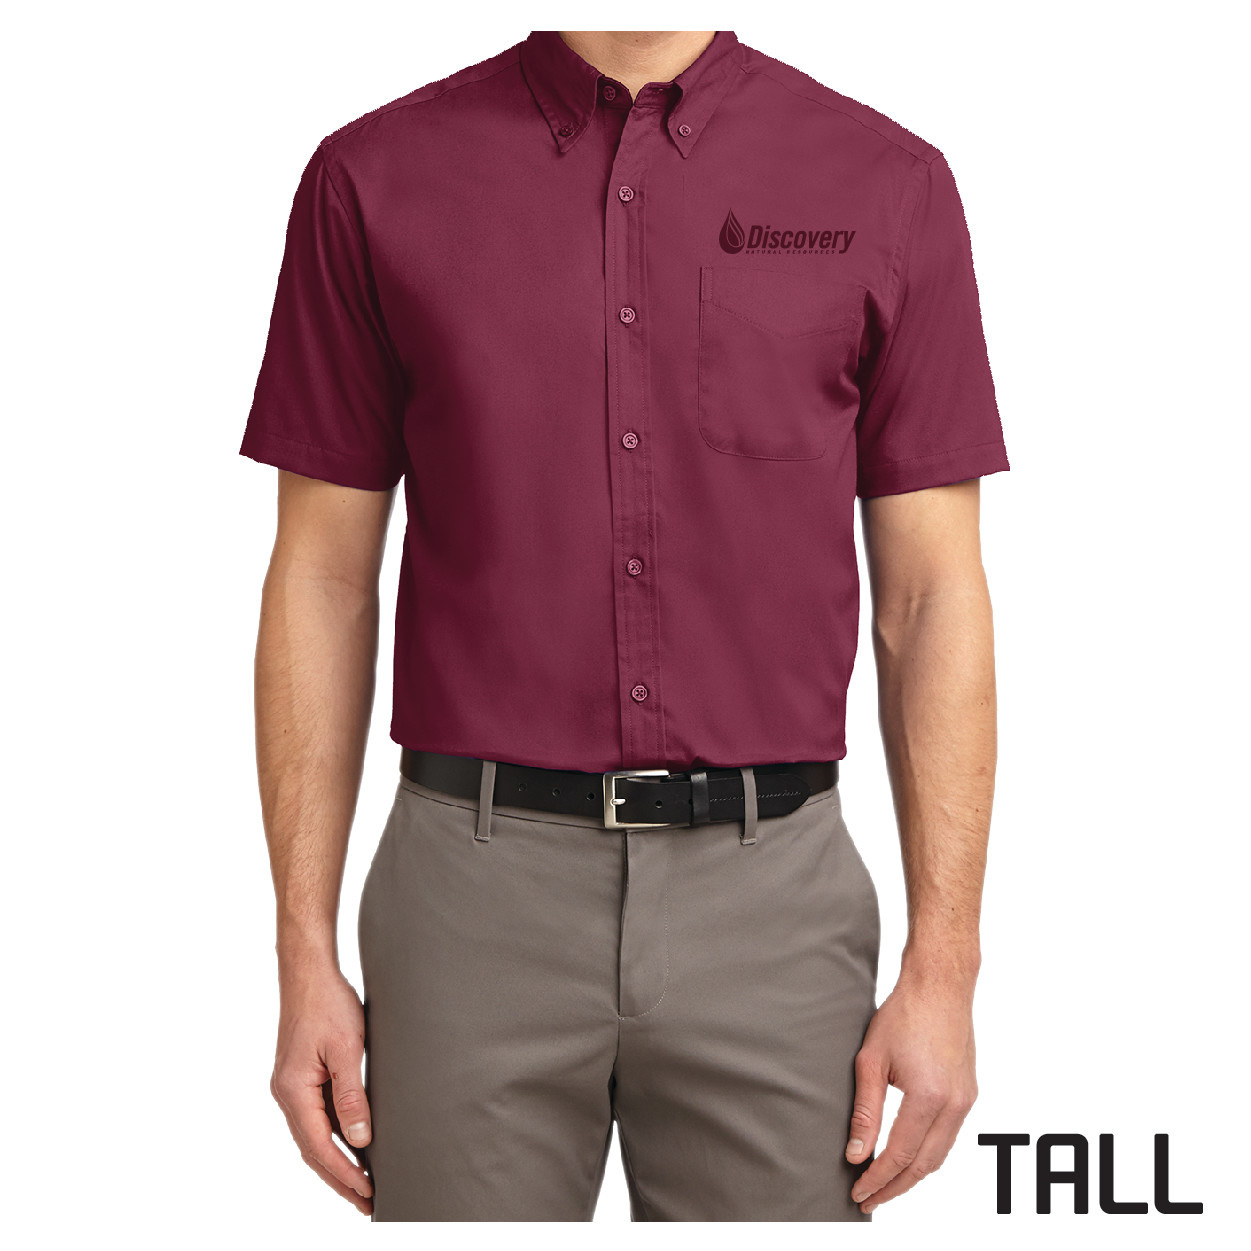 Port Authority Port Authority TALL Short Sleeve Easy Care Shirt (Burgundy/Light Stone)